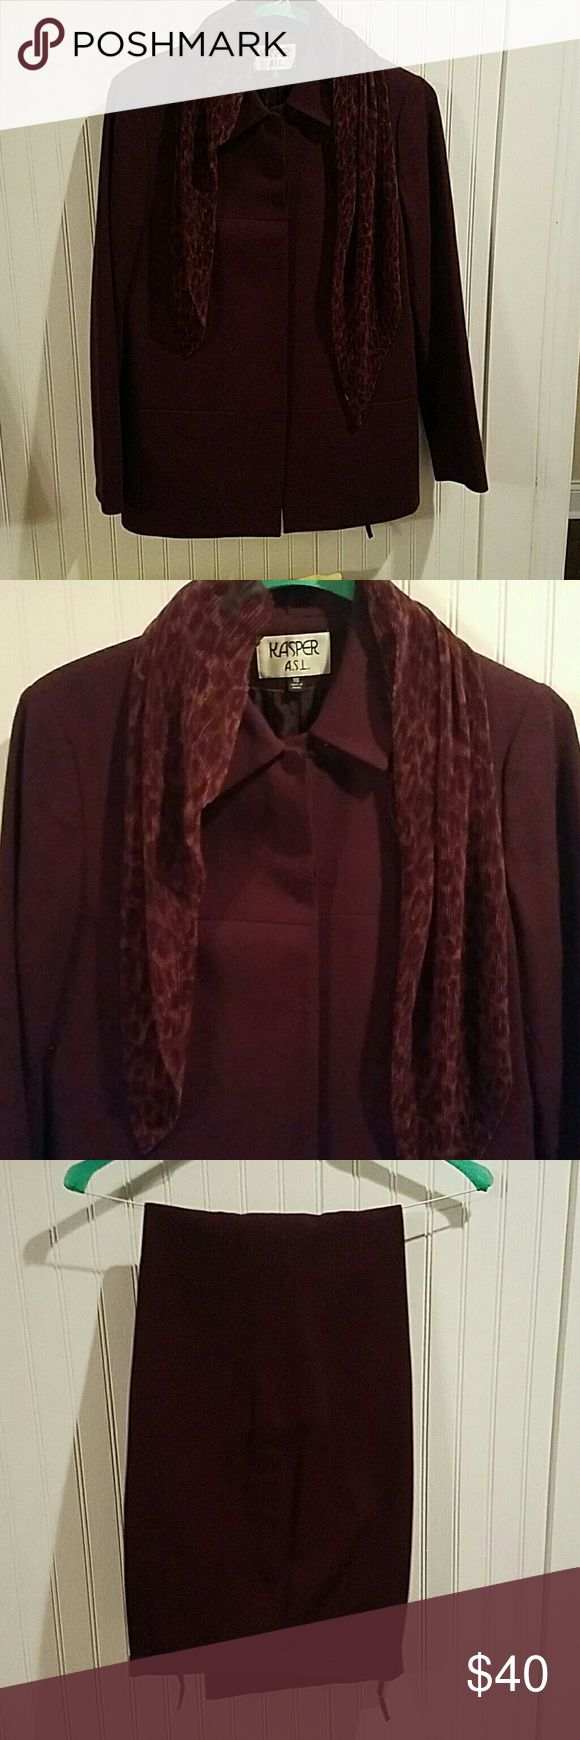 Excellent Topshop Modern Tailoring Tailored Suit Blazer In Red BURGUNDY  Lyst